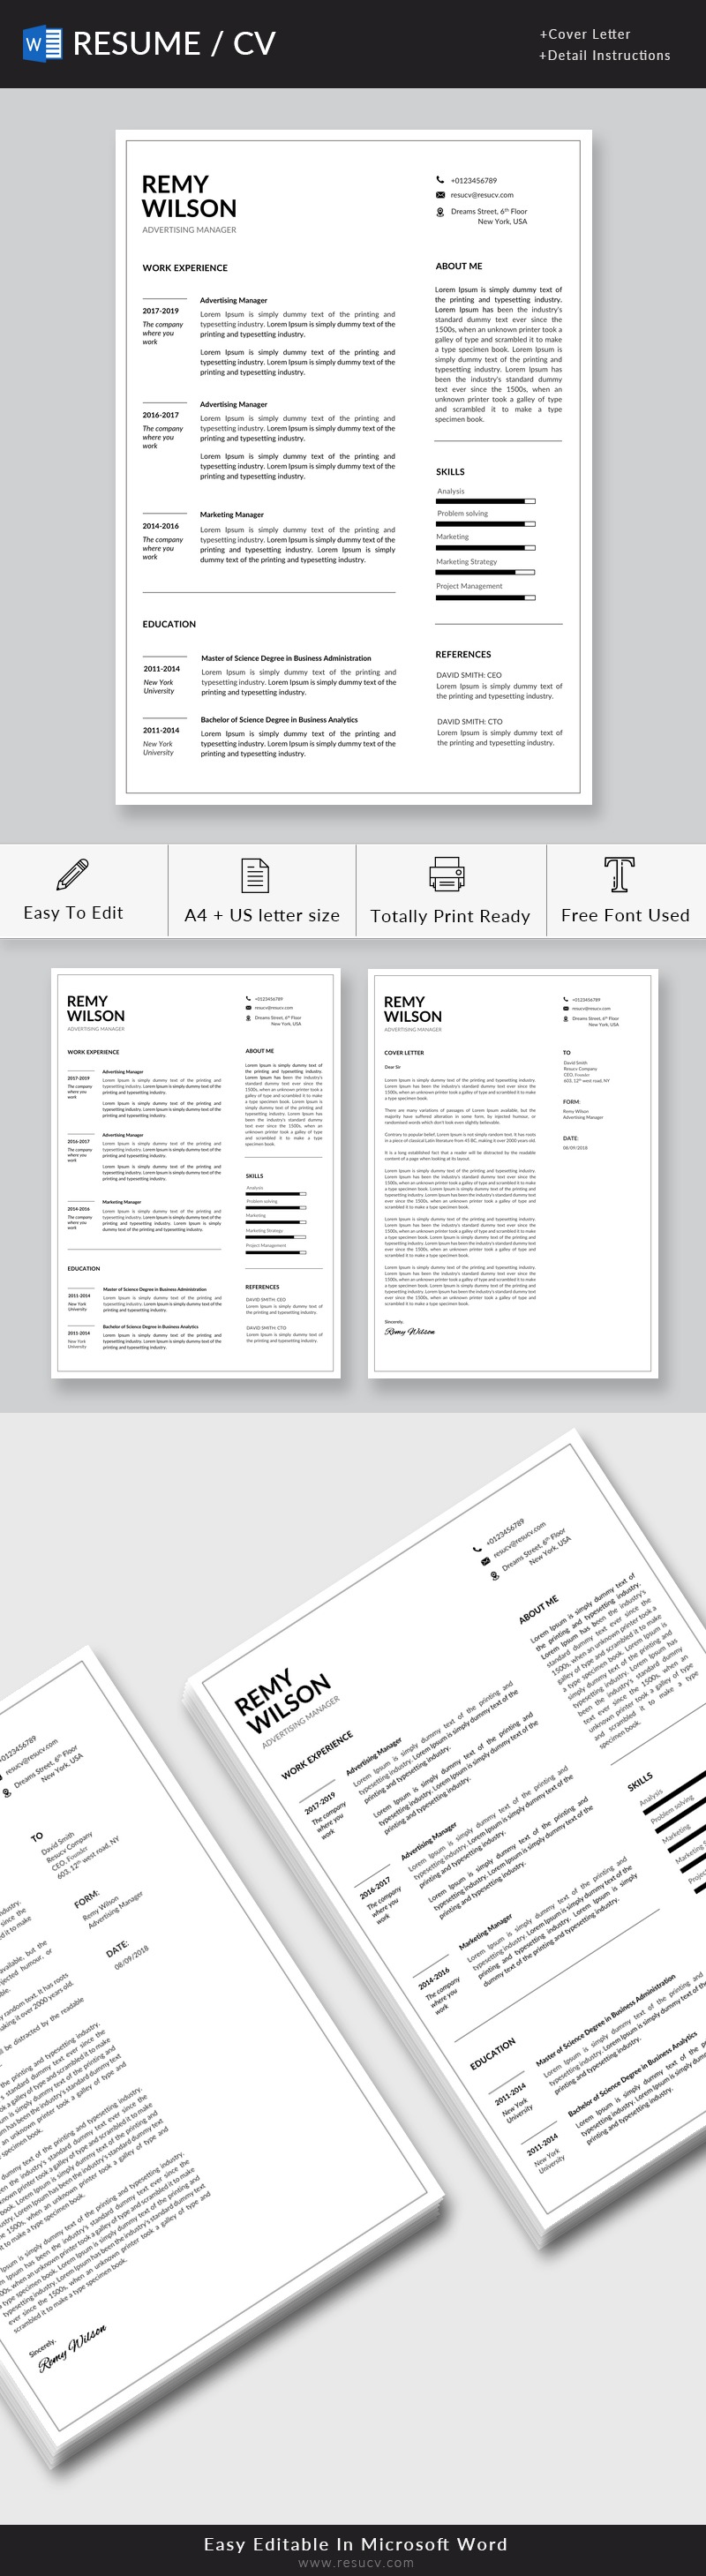 Clean Advertising Manager Resume Template with Cover Letter   Simple Resume Template